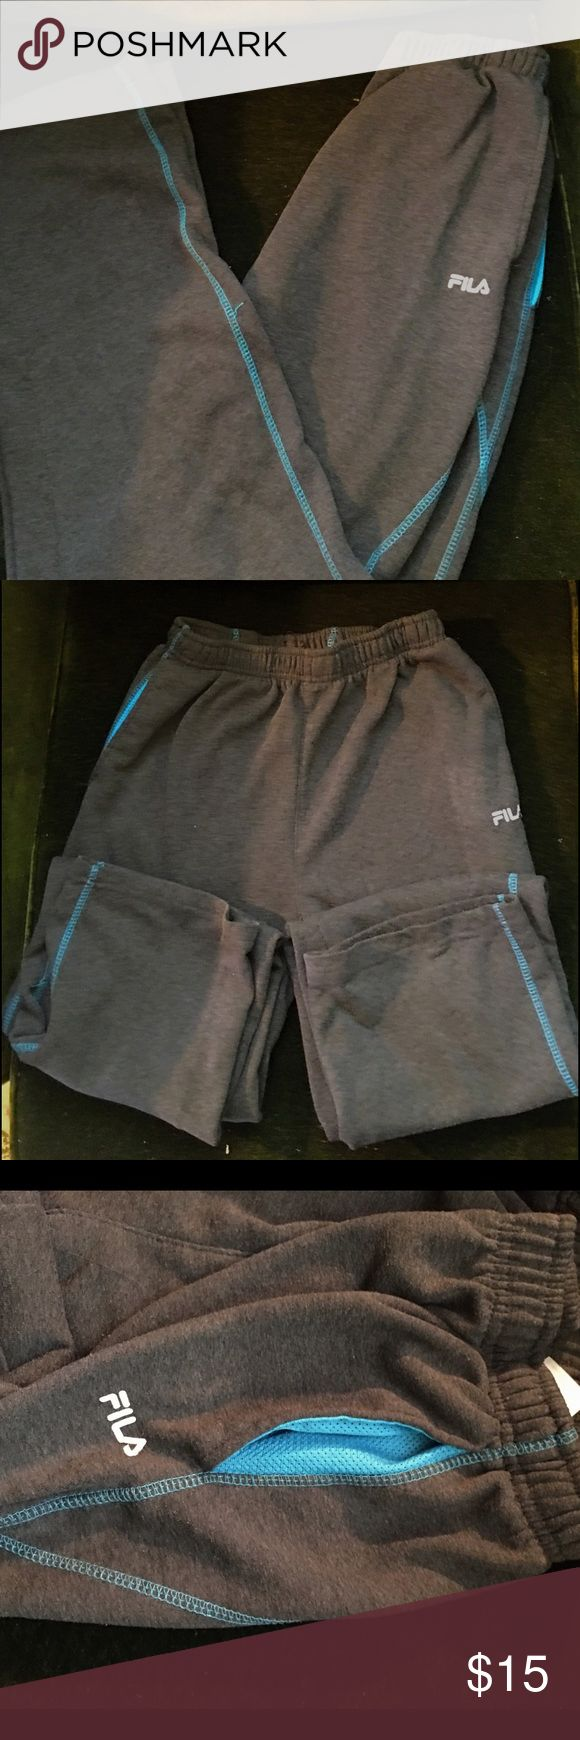 🌹grey with turquoise trimming fila sweat pants 🌹 🎉flia sweat pants are grey with with turquoise. Trimming and two side pockets 💕elastic waist band 💕nice fitting 💕comfortable. Good condition had been cleaned in fragrance free detergent Fila Pants Track Pants & Joggers